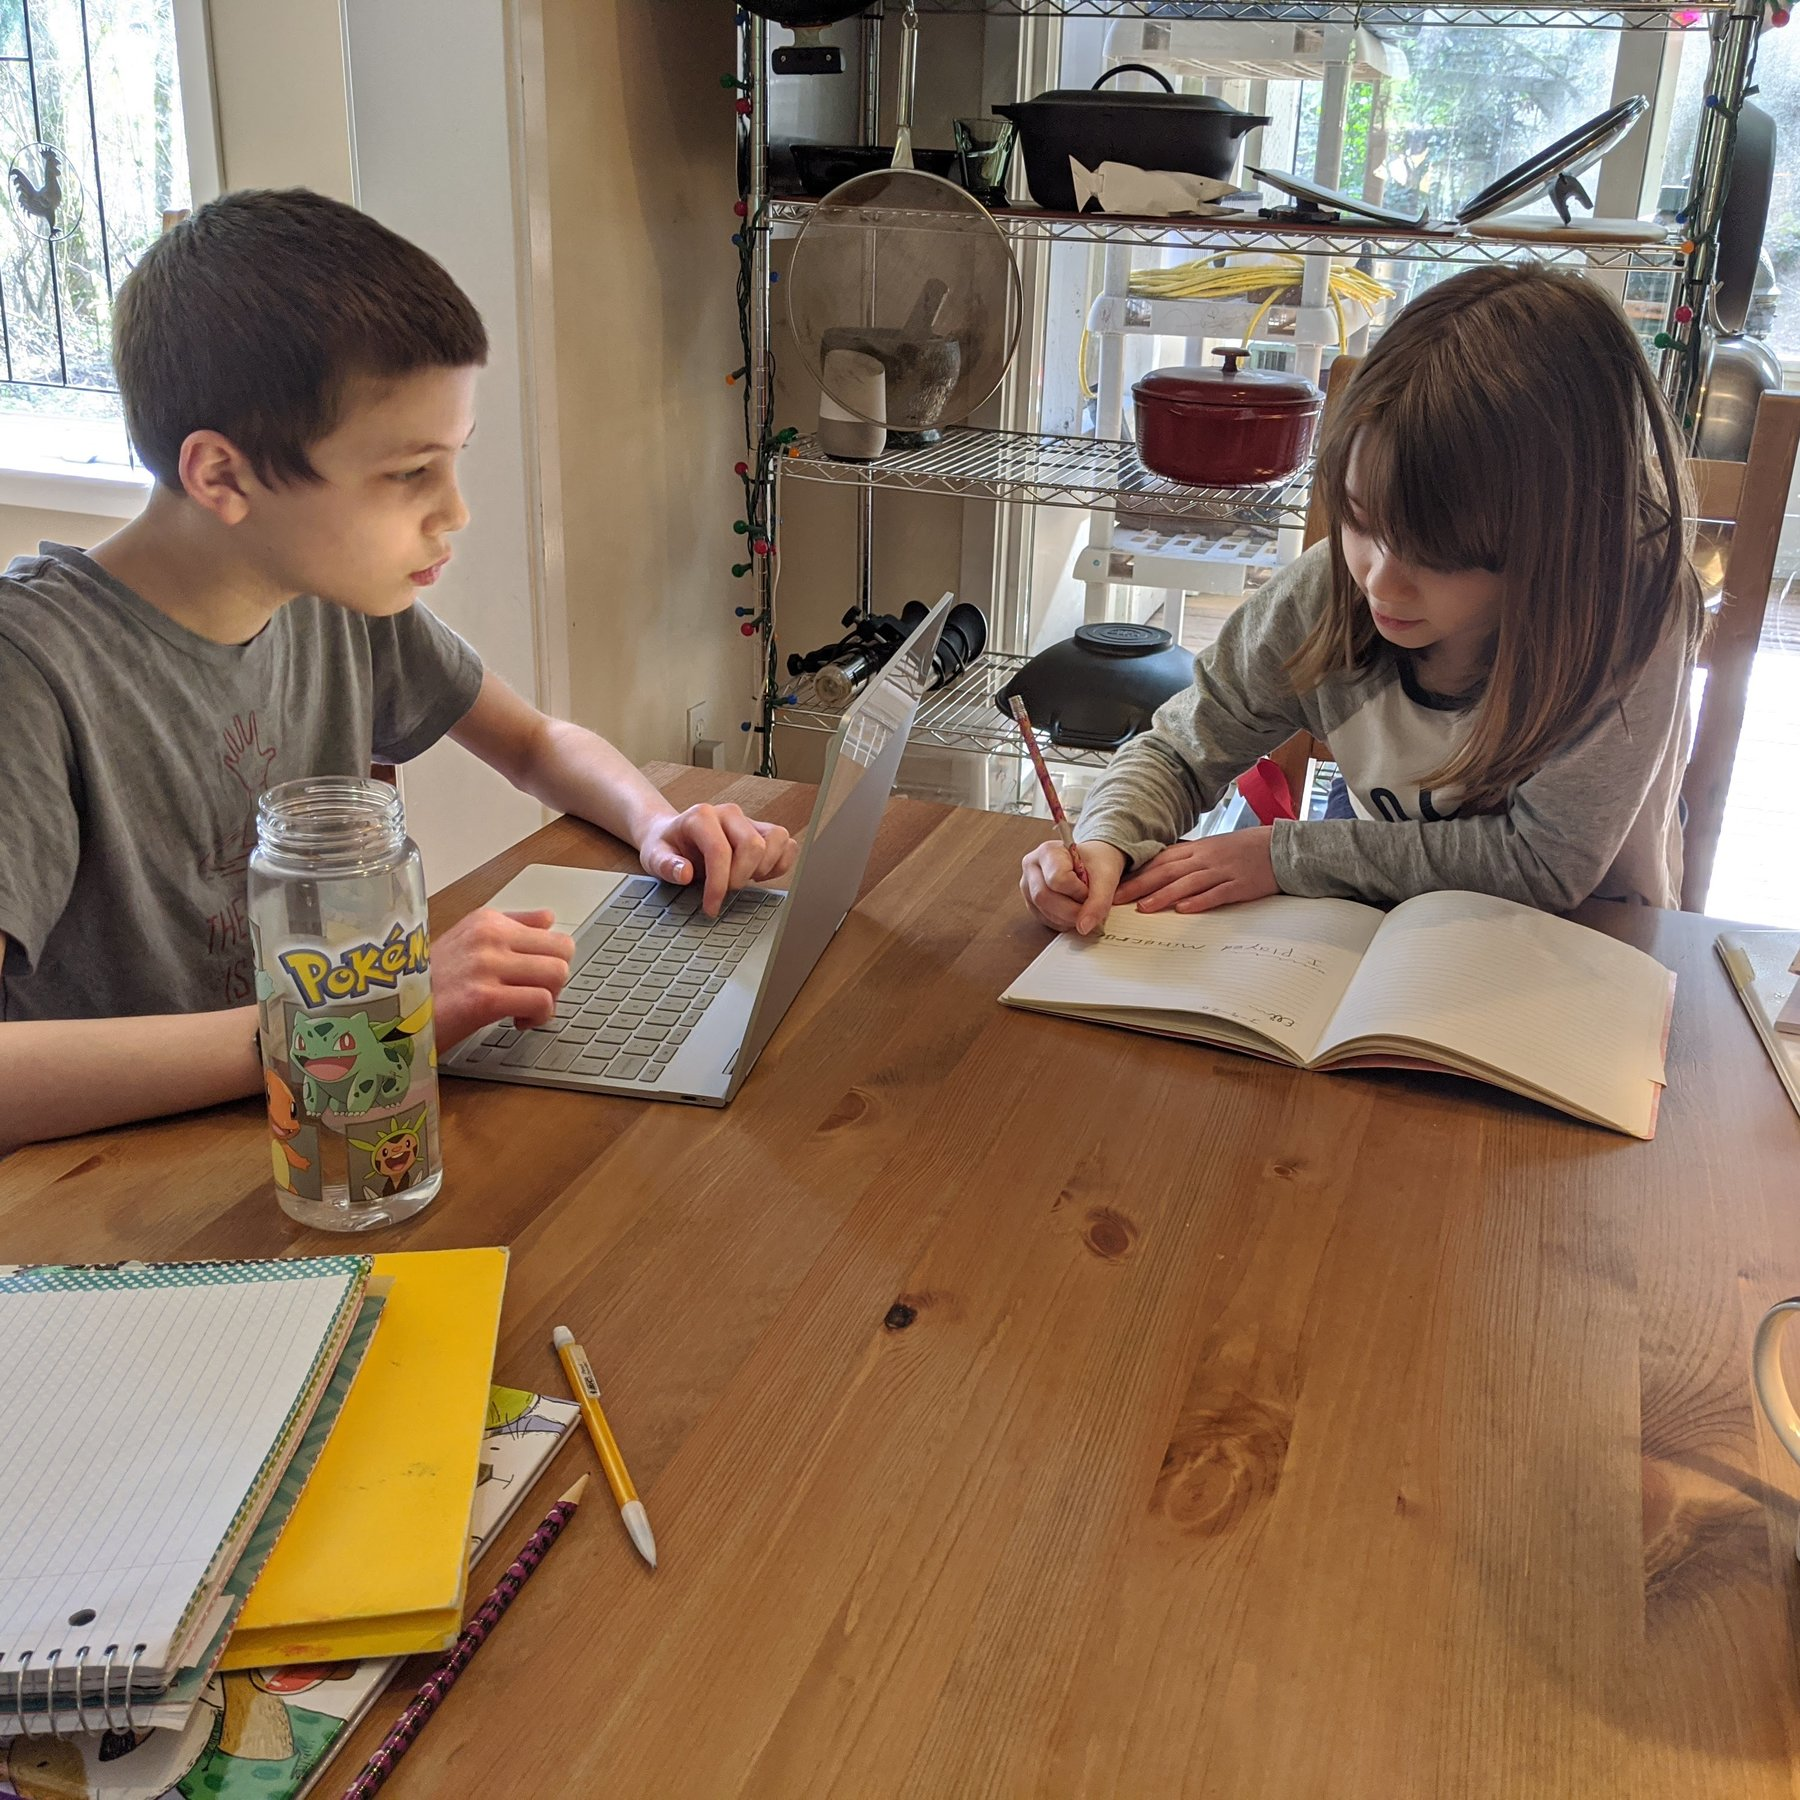 Their School Is Open. But the Kids Are Staying Home. - The New ...